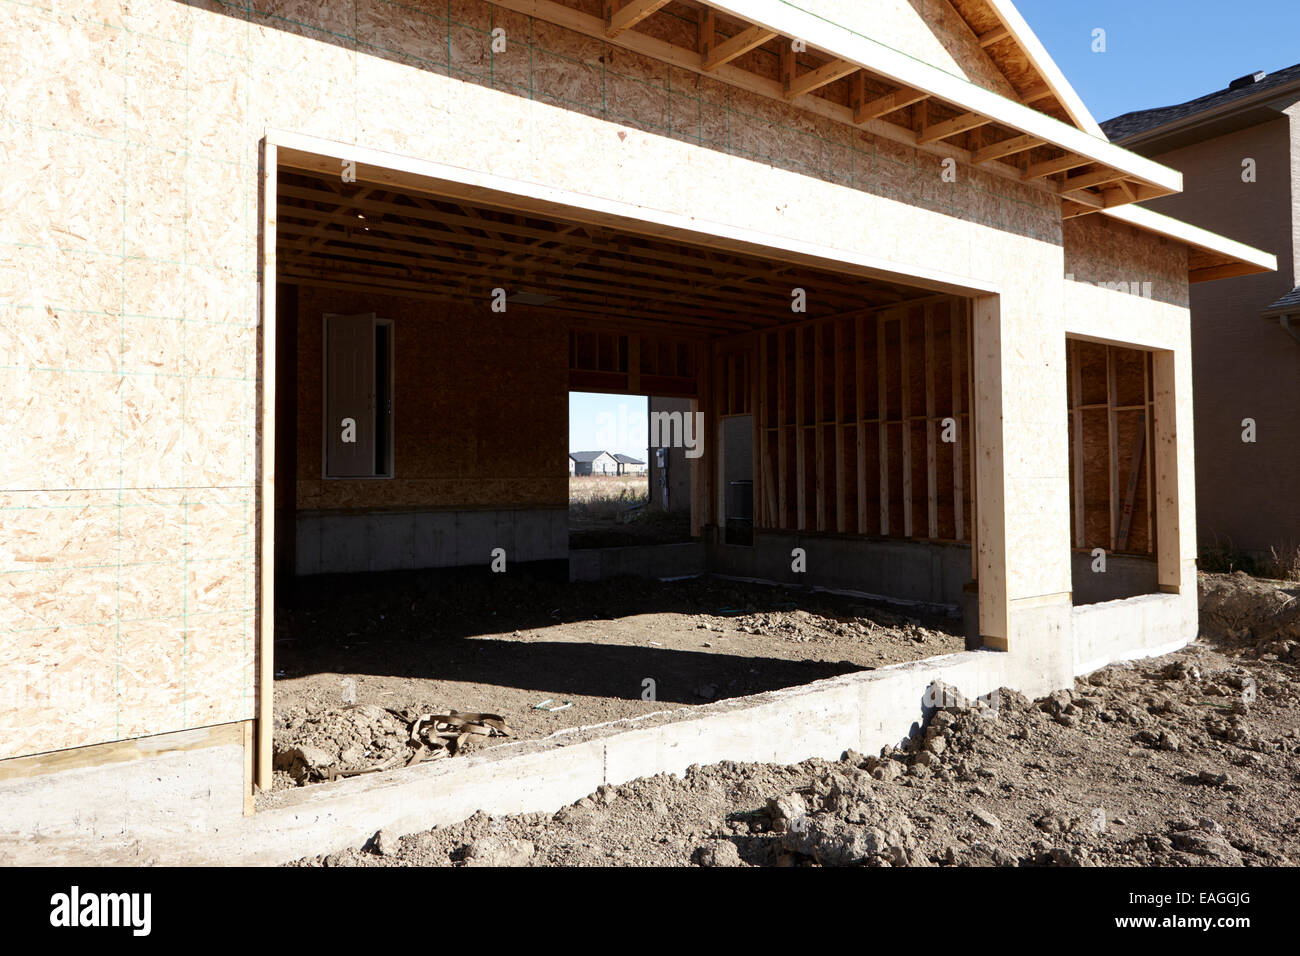 typical timber framed house garage construction with sheet panels Saskatchewan Canada - Stock Image